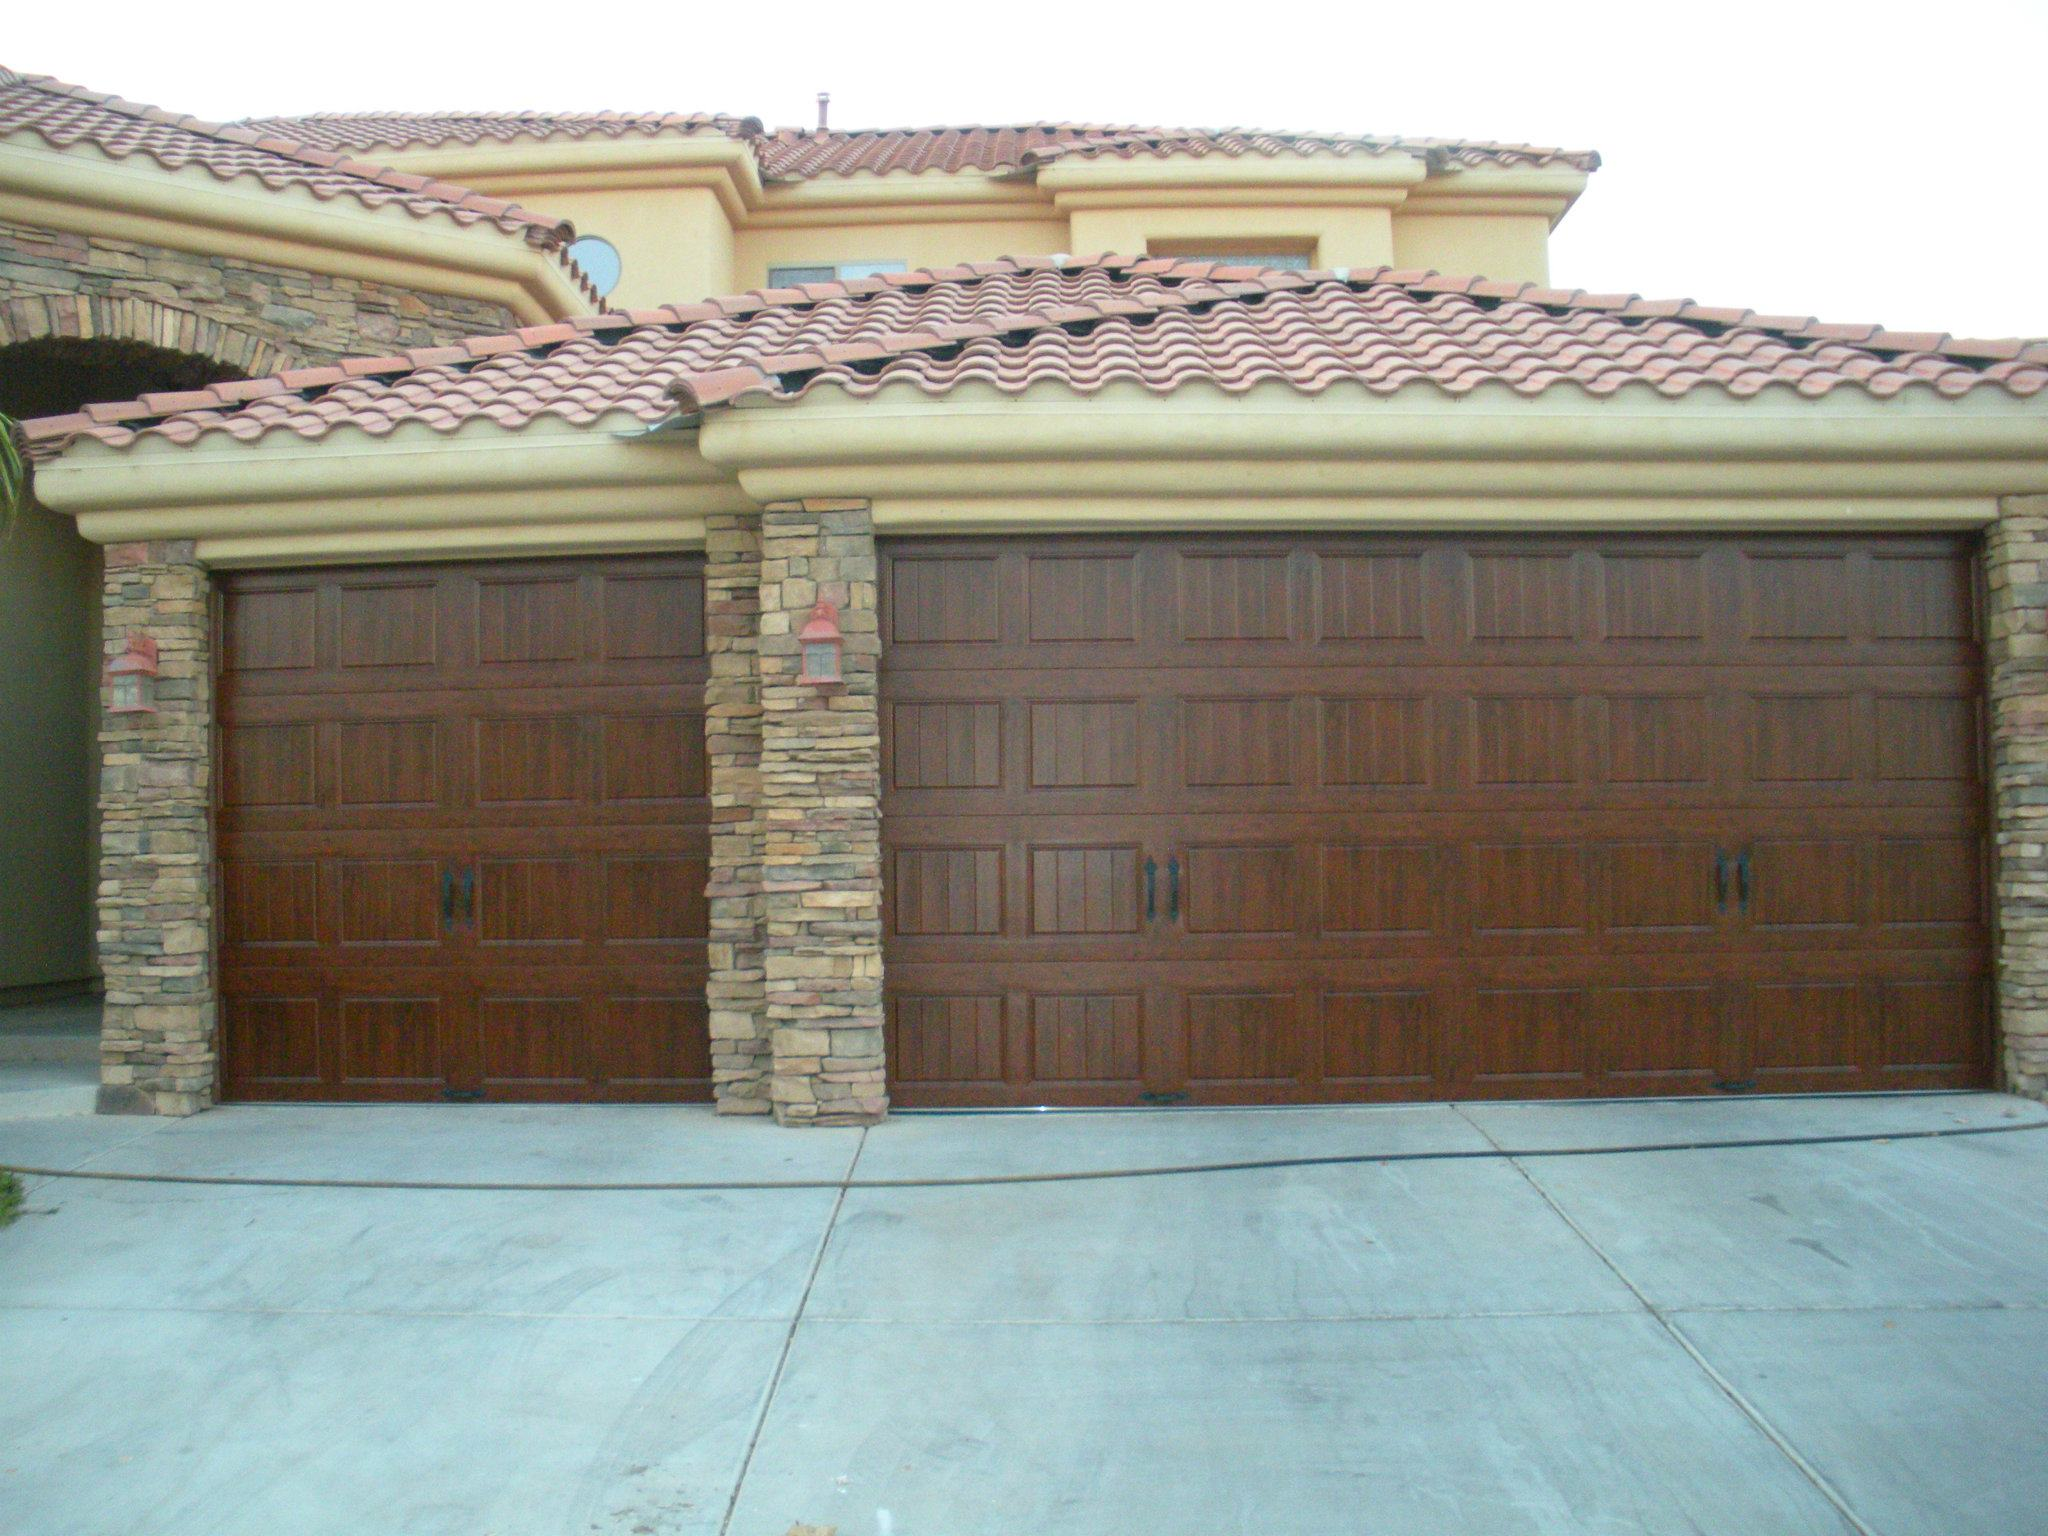 1536 #5F4838 Garage Door Installation JDT Garage Door Service pic Installed Garage Doors 37212048